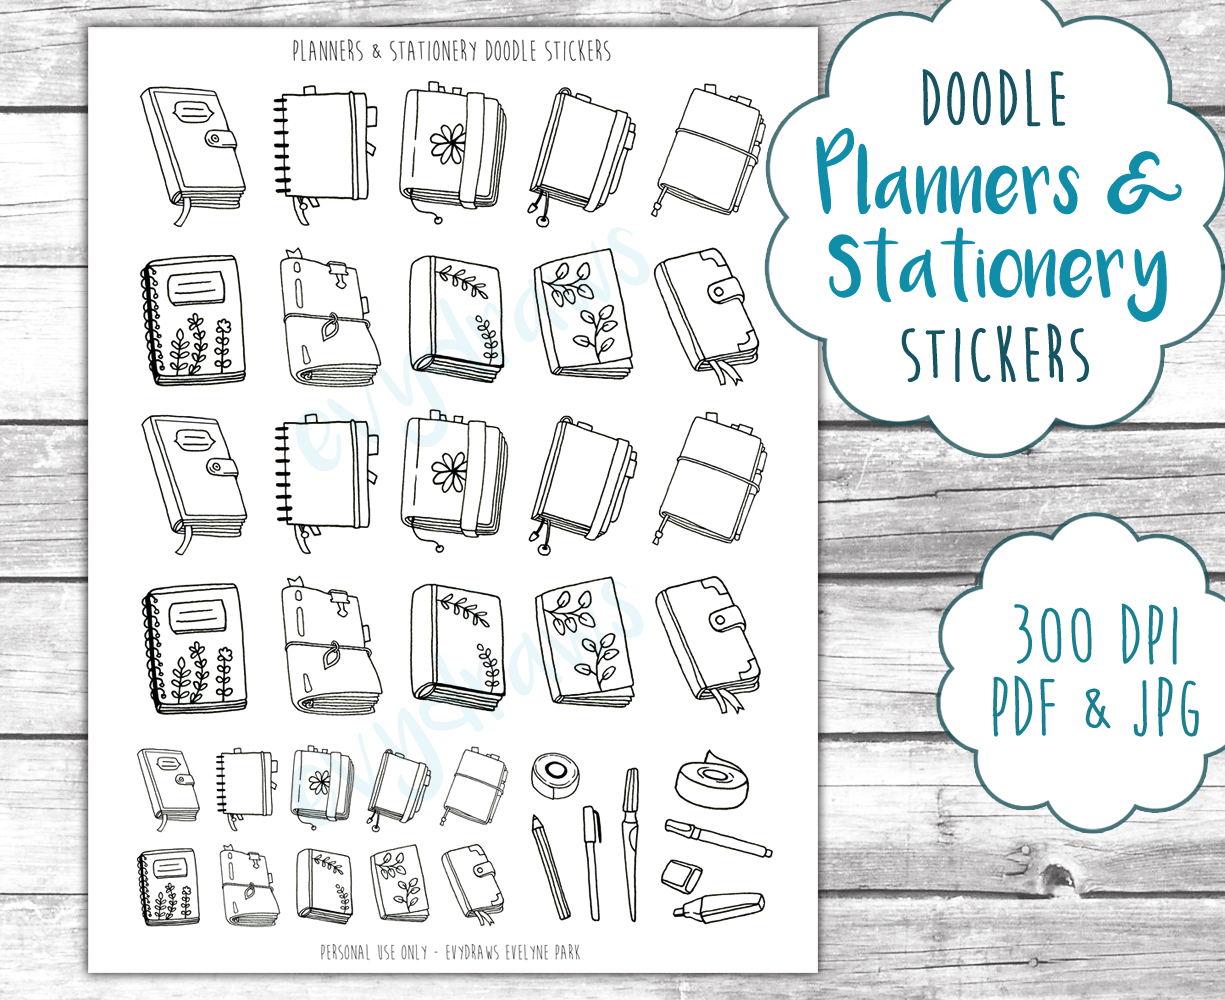 Hand-drawn doodle planners and journals, inspired by the Midori, Hobonichi, Filofax and various planner designs. With little washi tape and pen doodles and coming in various sizes, these printable stickers are the perfect decoration for your bullet journal or planner!